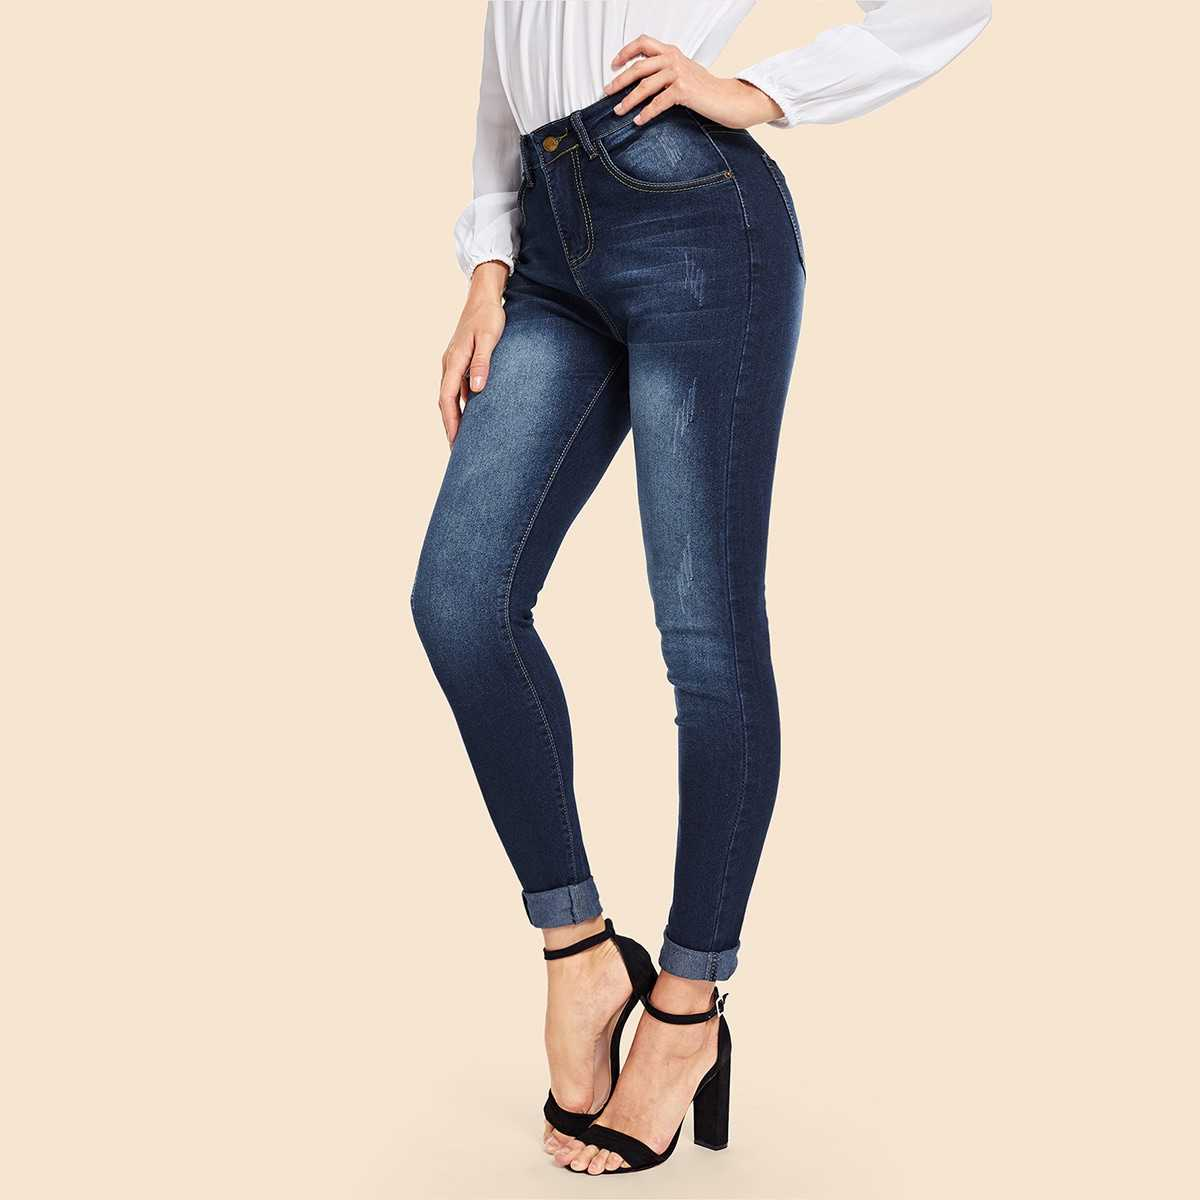 Faded Skinny Jeans in Navy by ROMWE on GOOFASH